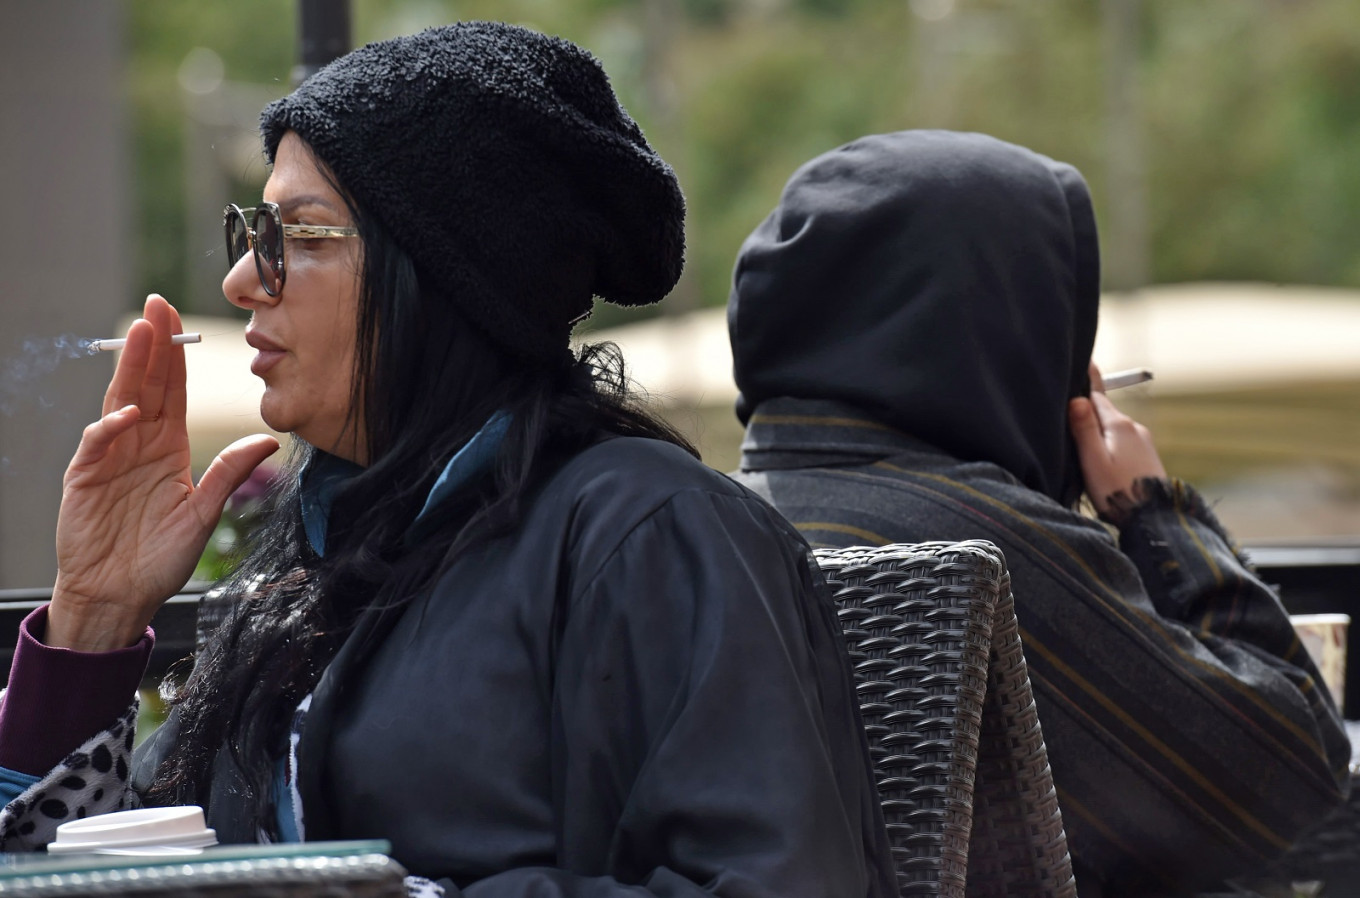 Saudi women now openly smoke to complete their freedom